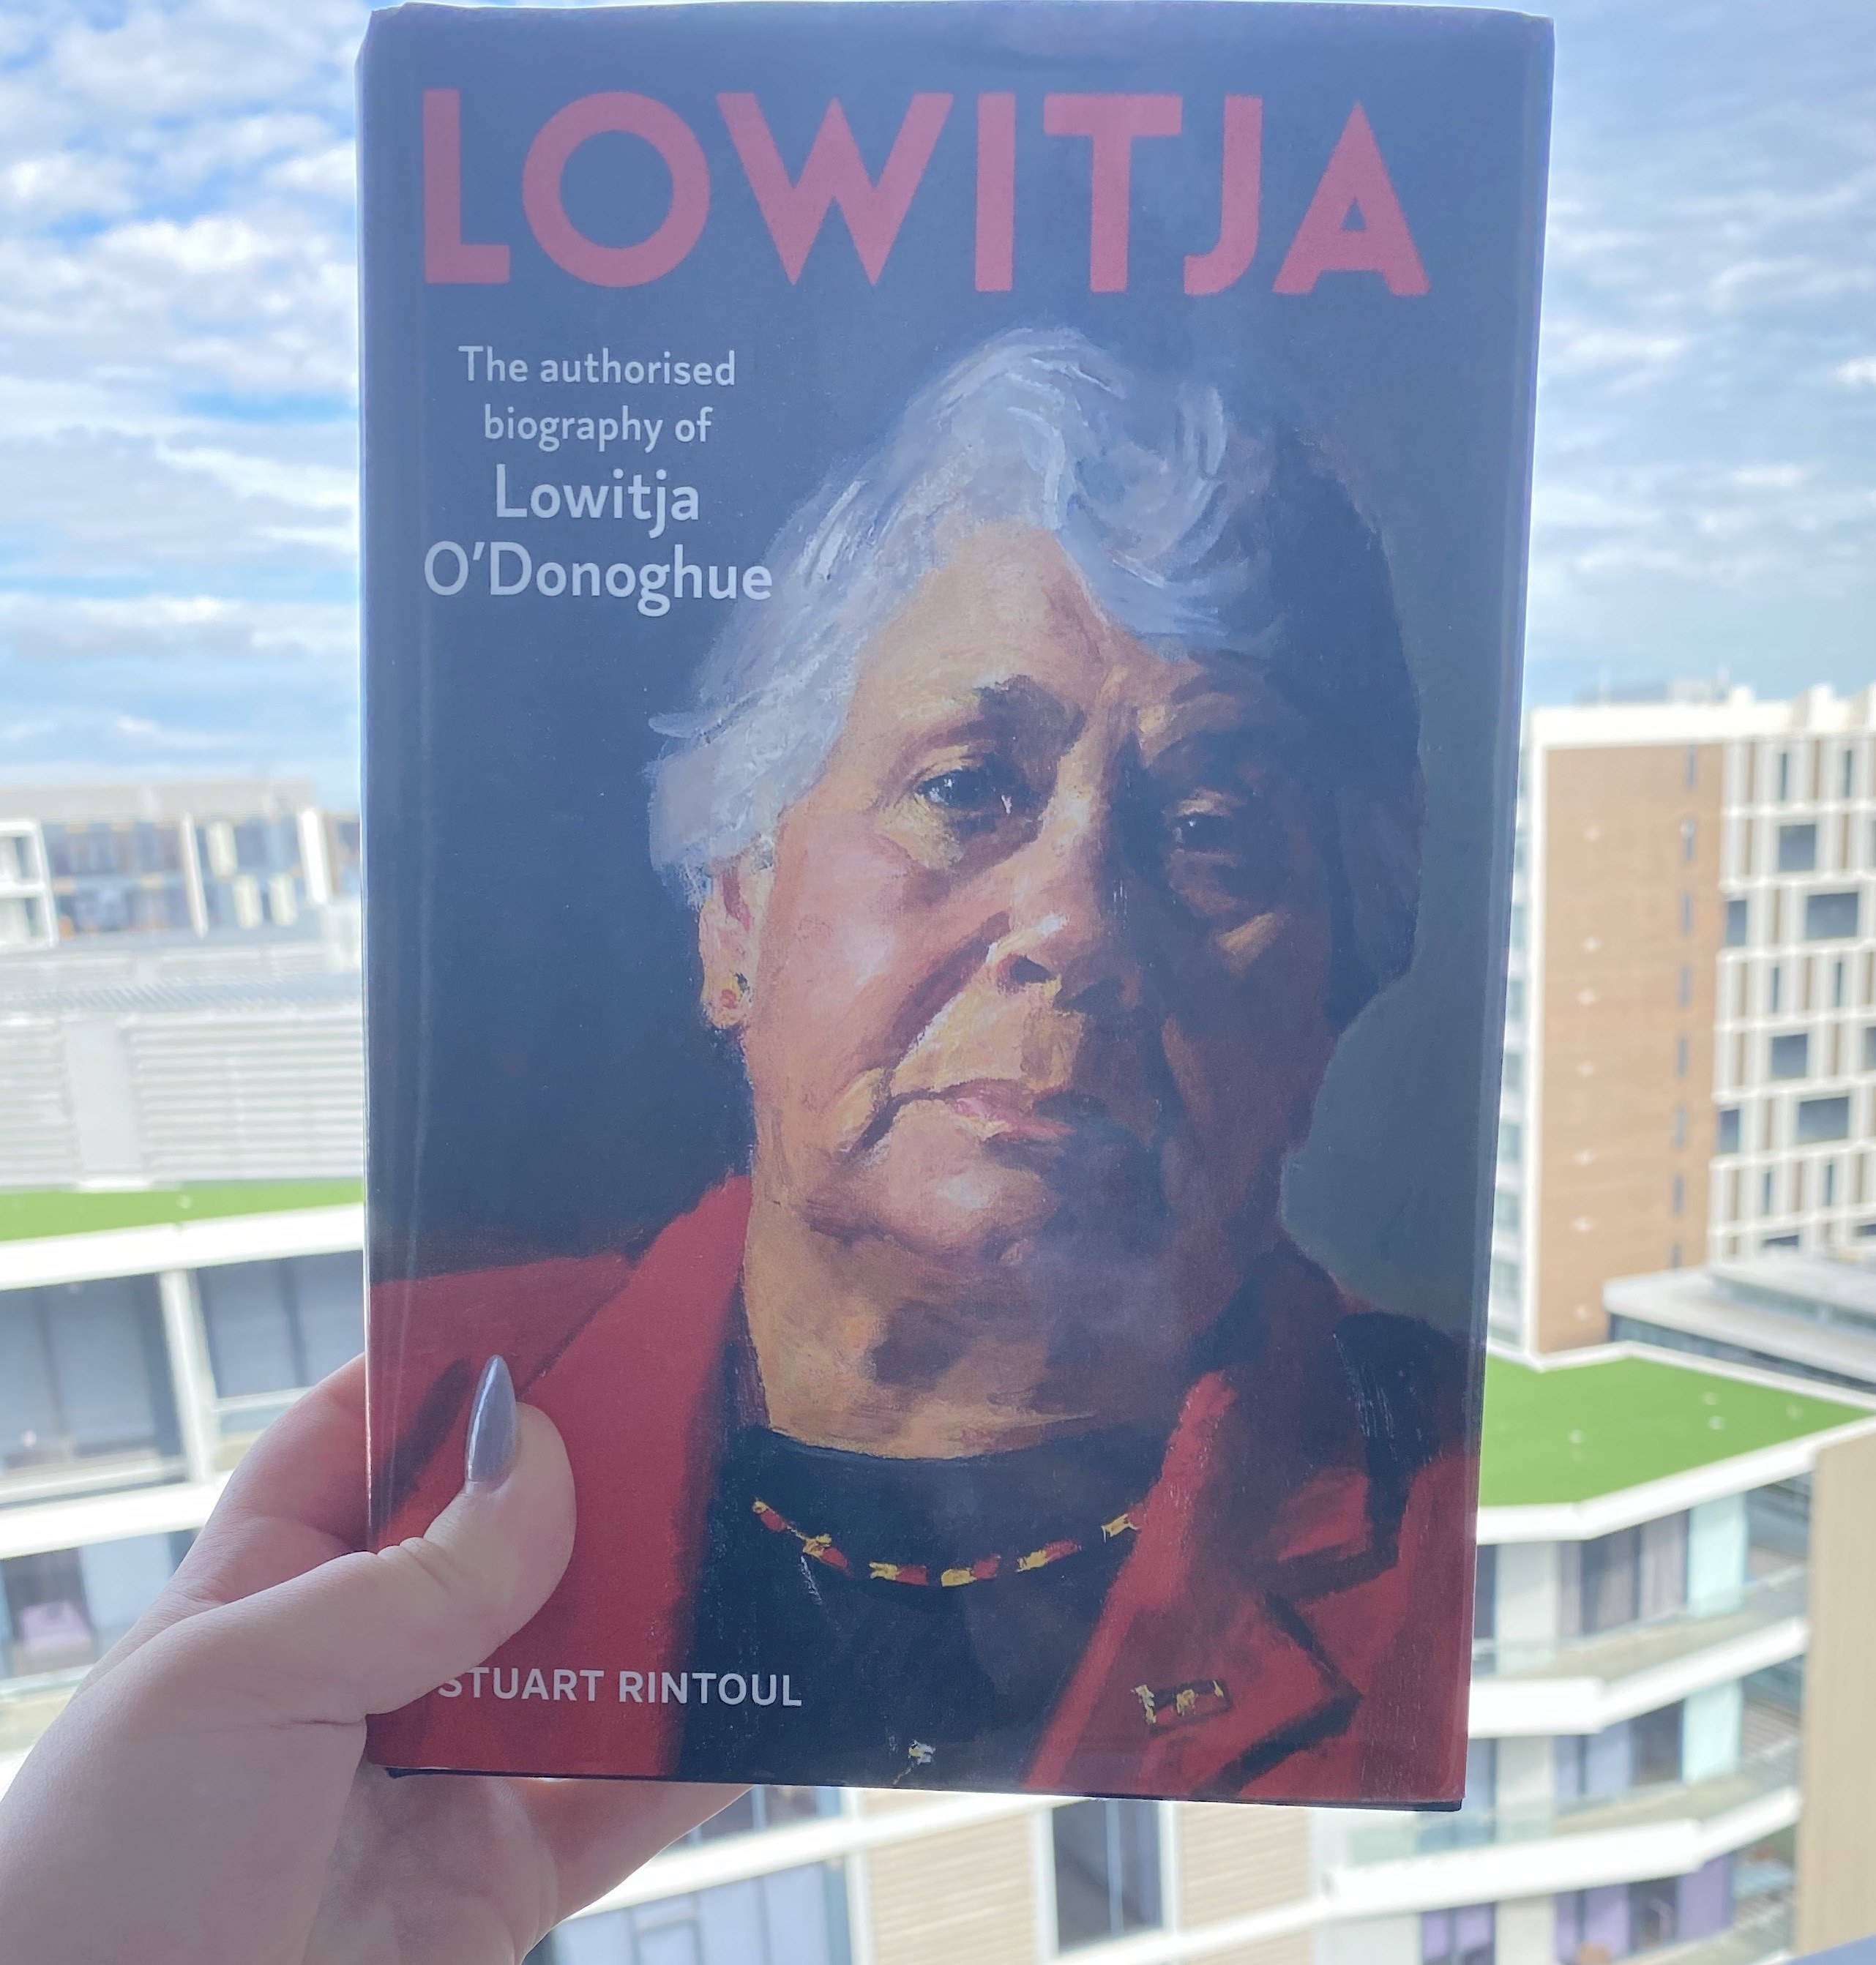 Person holding a book showing a portrait of Lowitja O'Donoghue